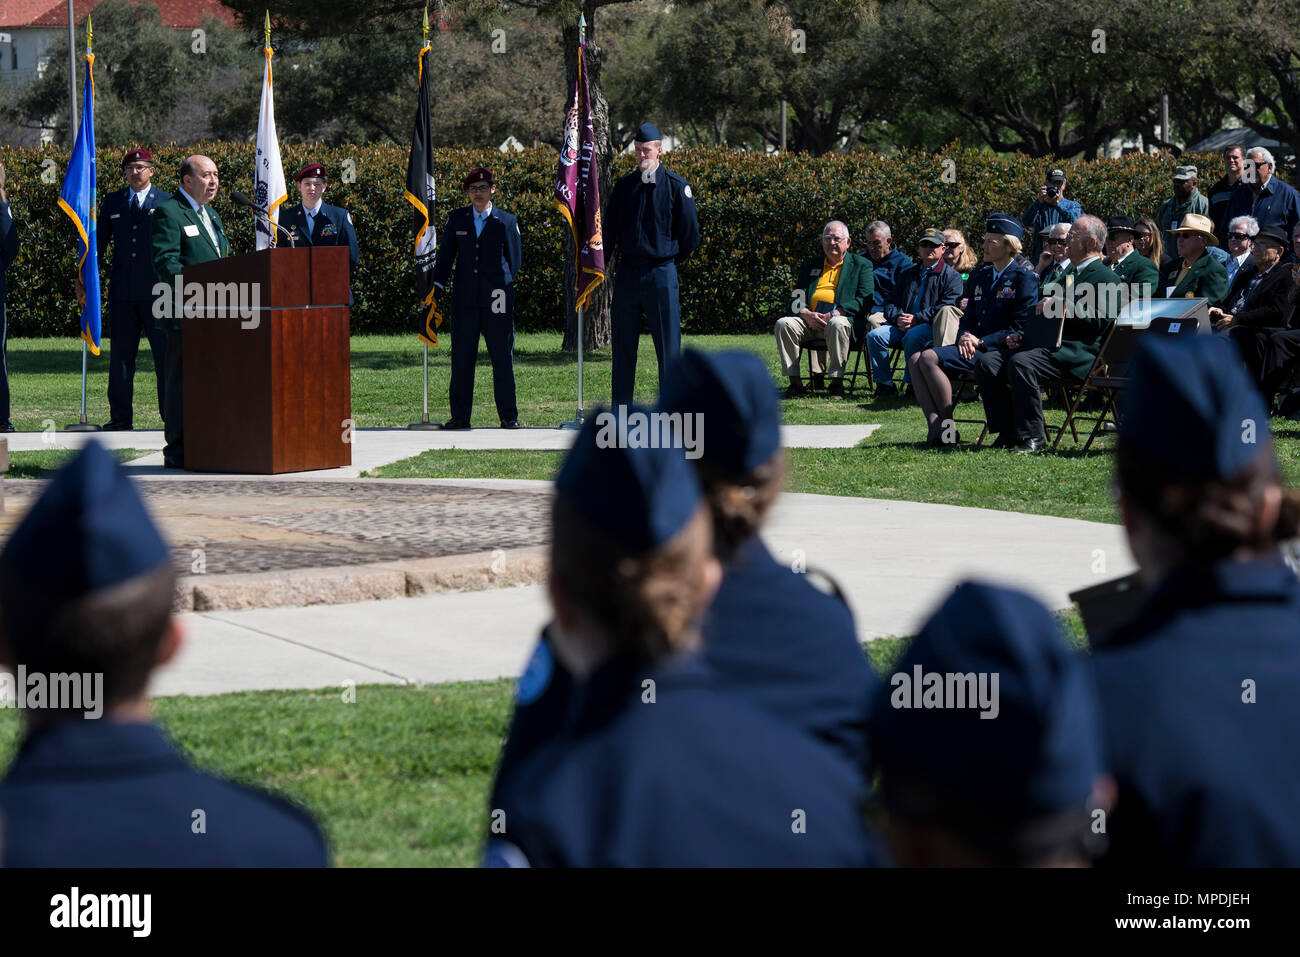 Retired U.S. Air Force Col. James Humphries, speaks during a ceremony celebrating the anniversary of the first flight of Army Signal Corps aircraft No. 1 March 2, 2017, at JBSA-Fort Sam Houston, Texas. On March 2, 1910, then-Army Lt. Benjamin Foulois became the first person to make a military flight, from a military facility, in a government owned plane flown by a military-trained pilot. (U.S. Air Force photo by Senior Airman Stormy Archer) - Stock Image